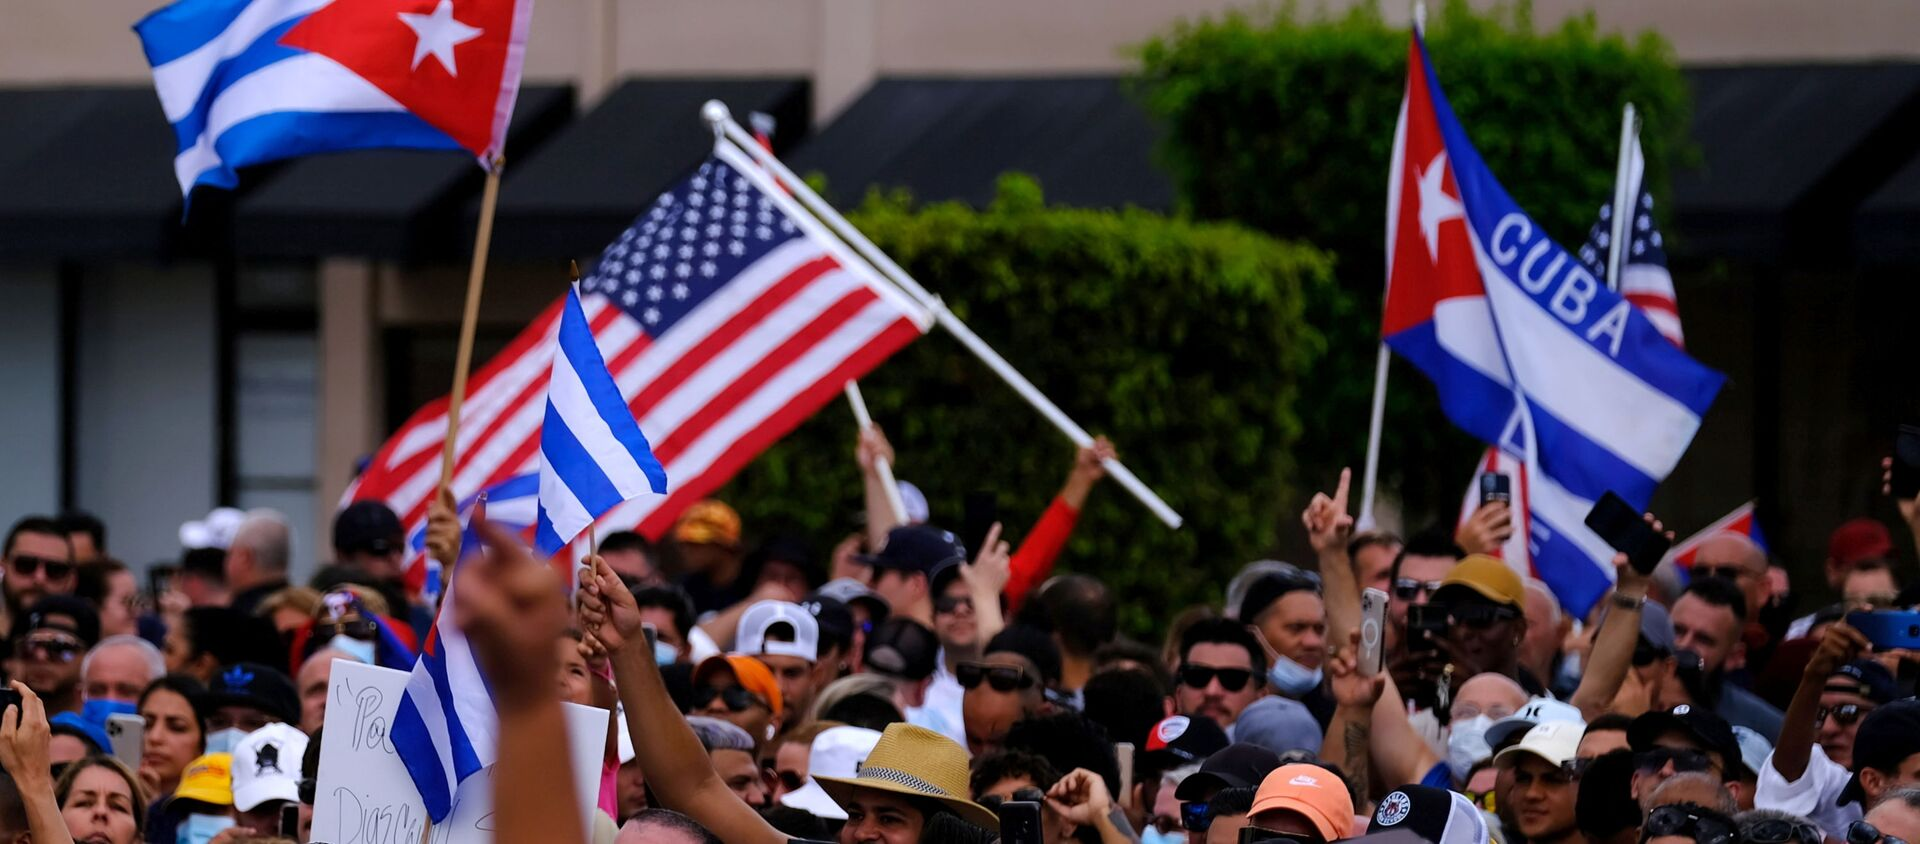 Emigres in Little Havana wave American and Cuban flags as they react to reports of protests in Cuba against the deteriorating economy, in Miami, Florida, U.S., July 11, 2021 - Sputnik Việt Nam, 1920, 15.07.2021